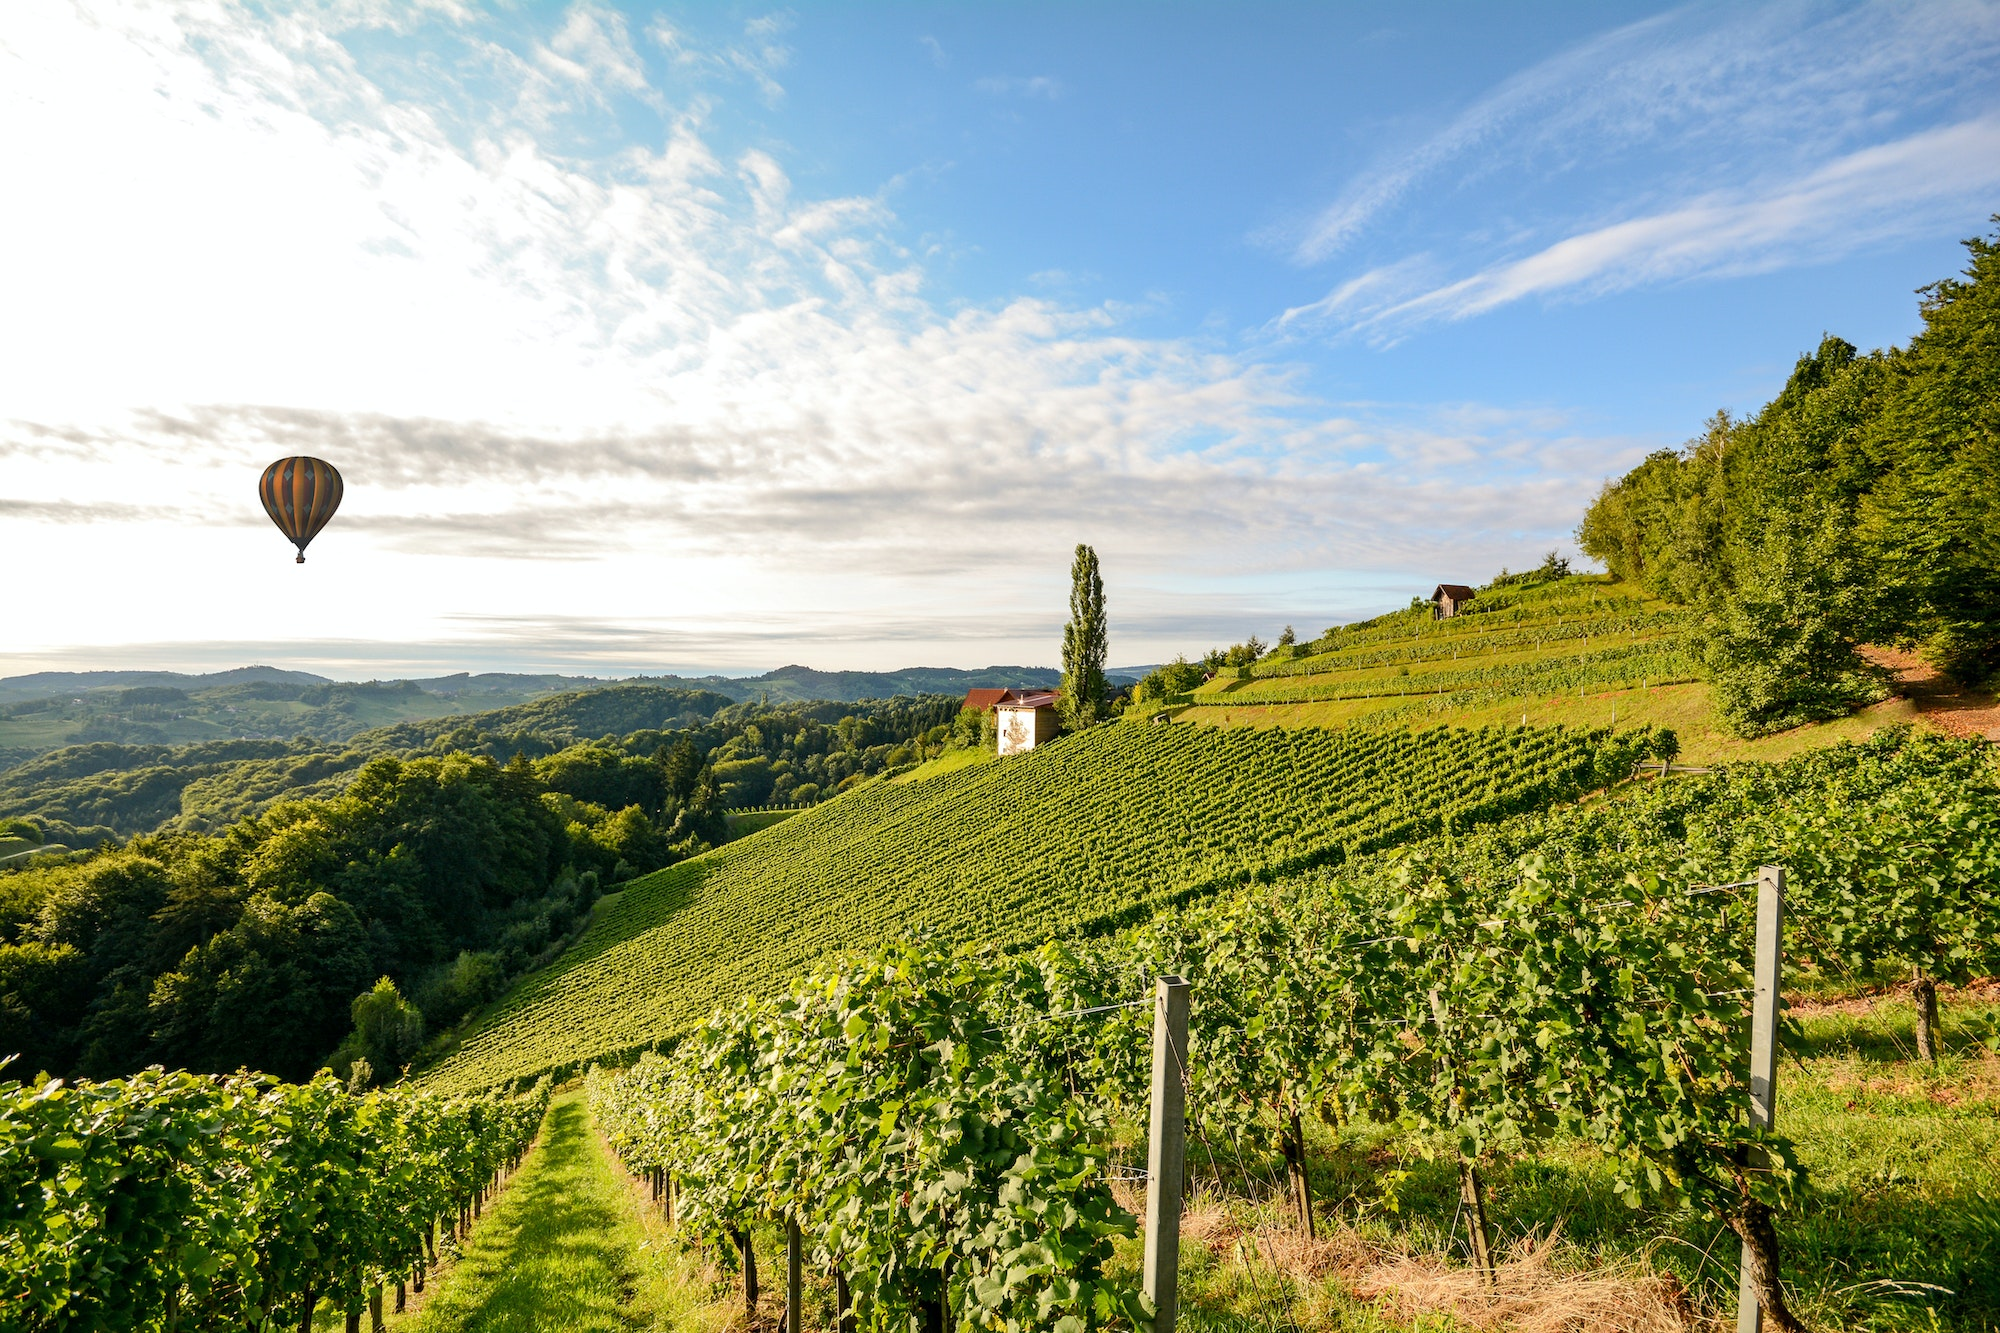 Situated in Tuscany, Chianti is one of Italy's best-known wine districts.